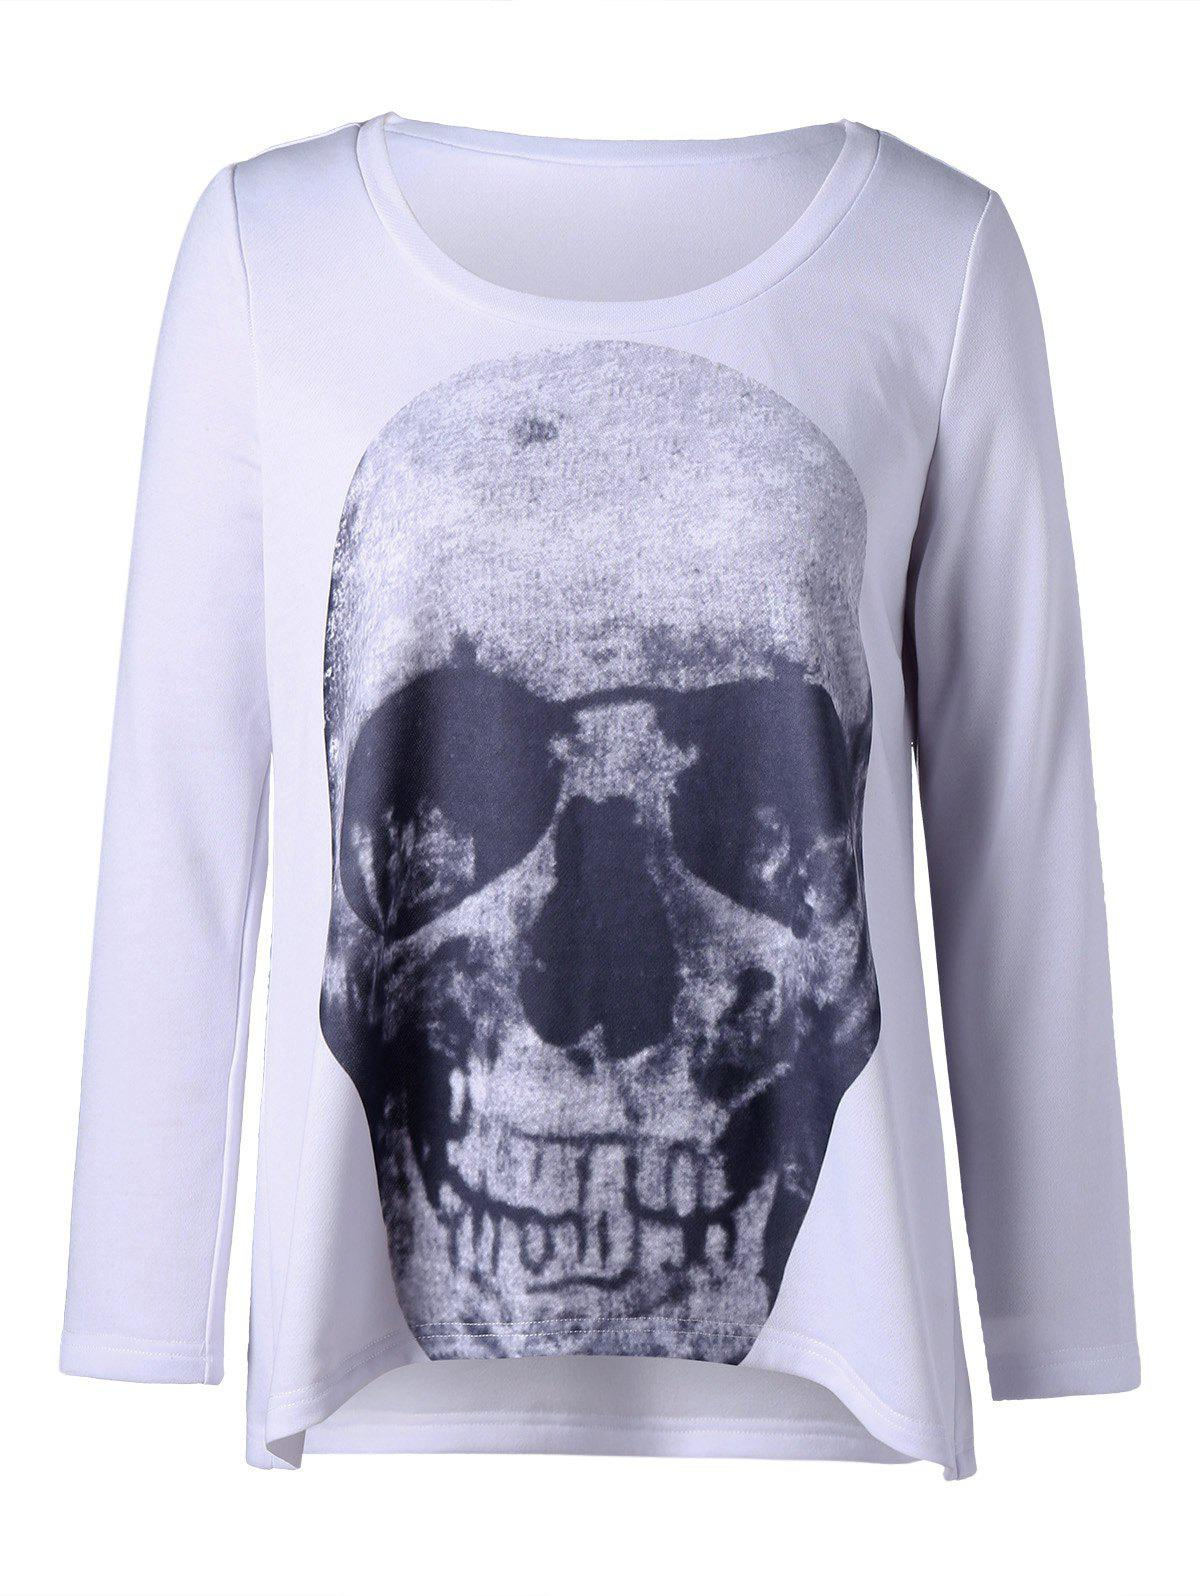 Plus Size Skull Long Sleeve T-shirt - WHITE 4XL